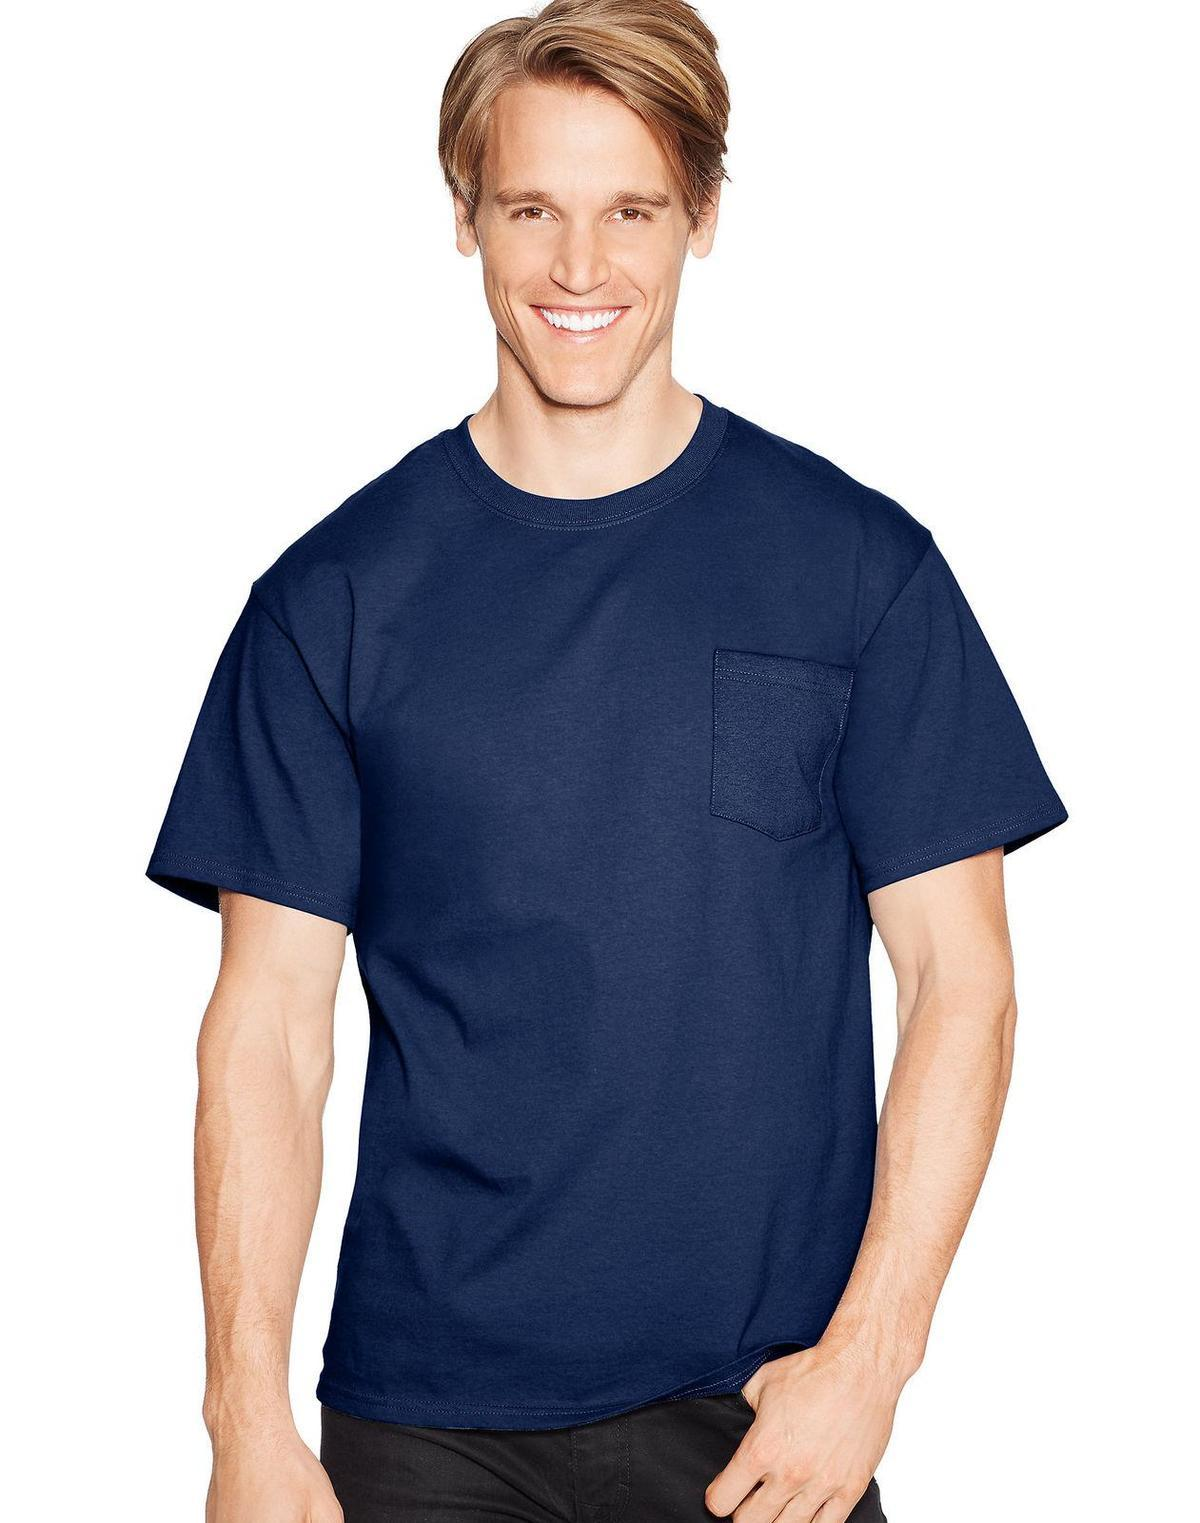 883c2002 ... Cotton T Shirt Fashion New T Shirts Mens T Shirt With Pocket Tagless  Comfort Soft Tees Tops Blank Plain Adult Buy Funny T Shirts Online Tee  Shirts Funny ...